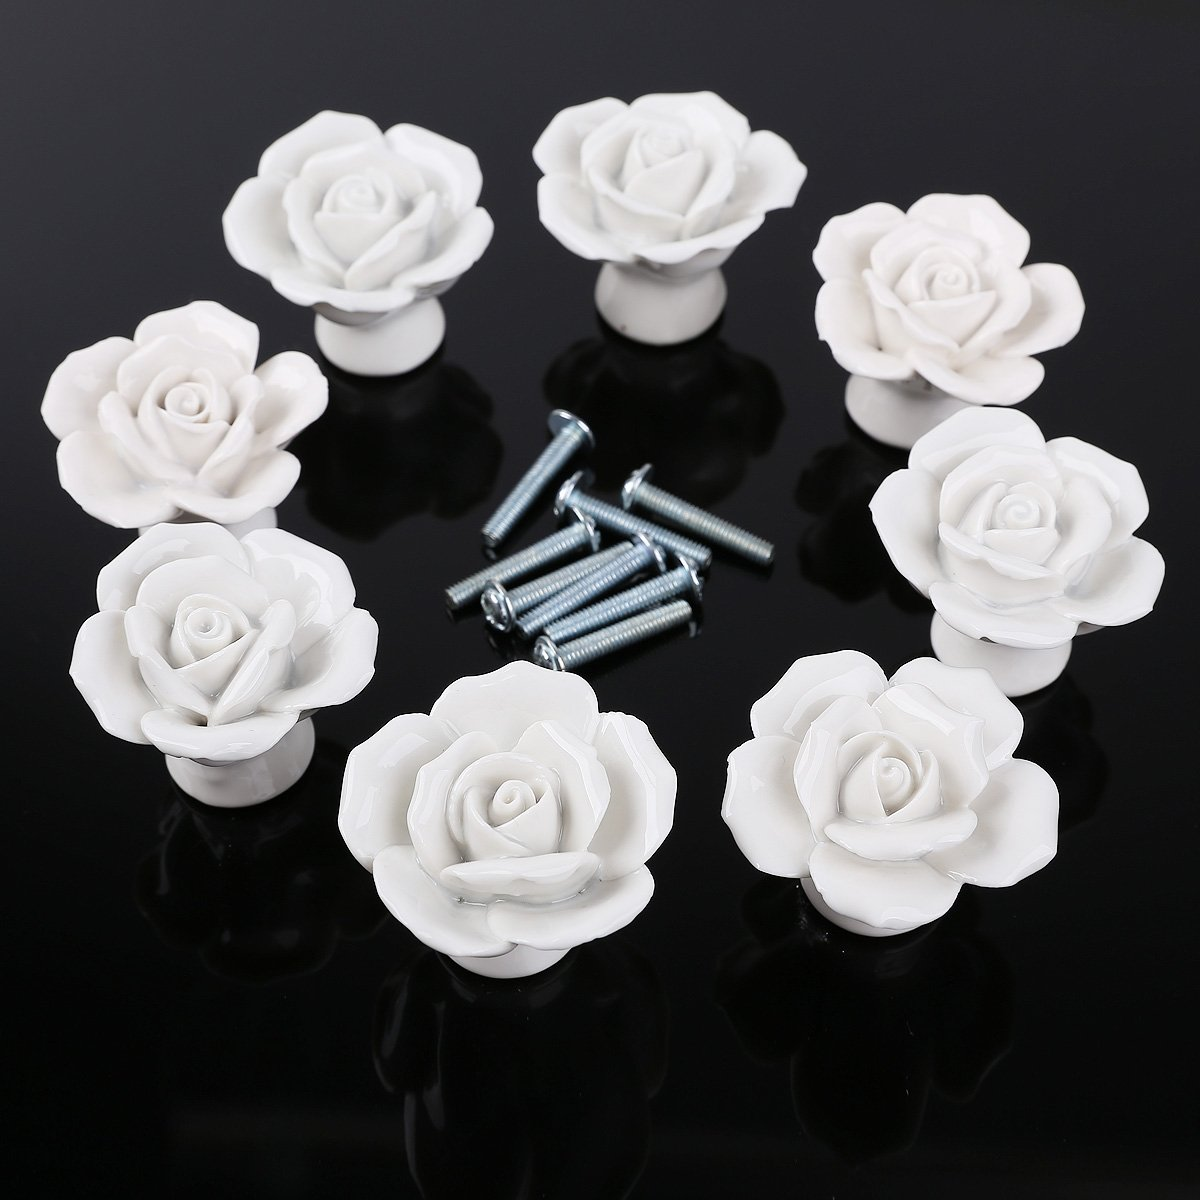 8PCS White Ceramic Vintage Floral Rose Door Knobs Handle Drawer ...